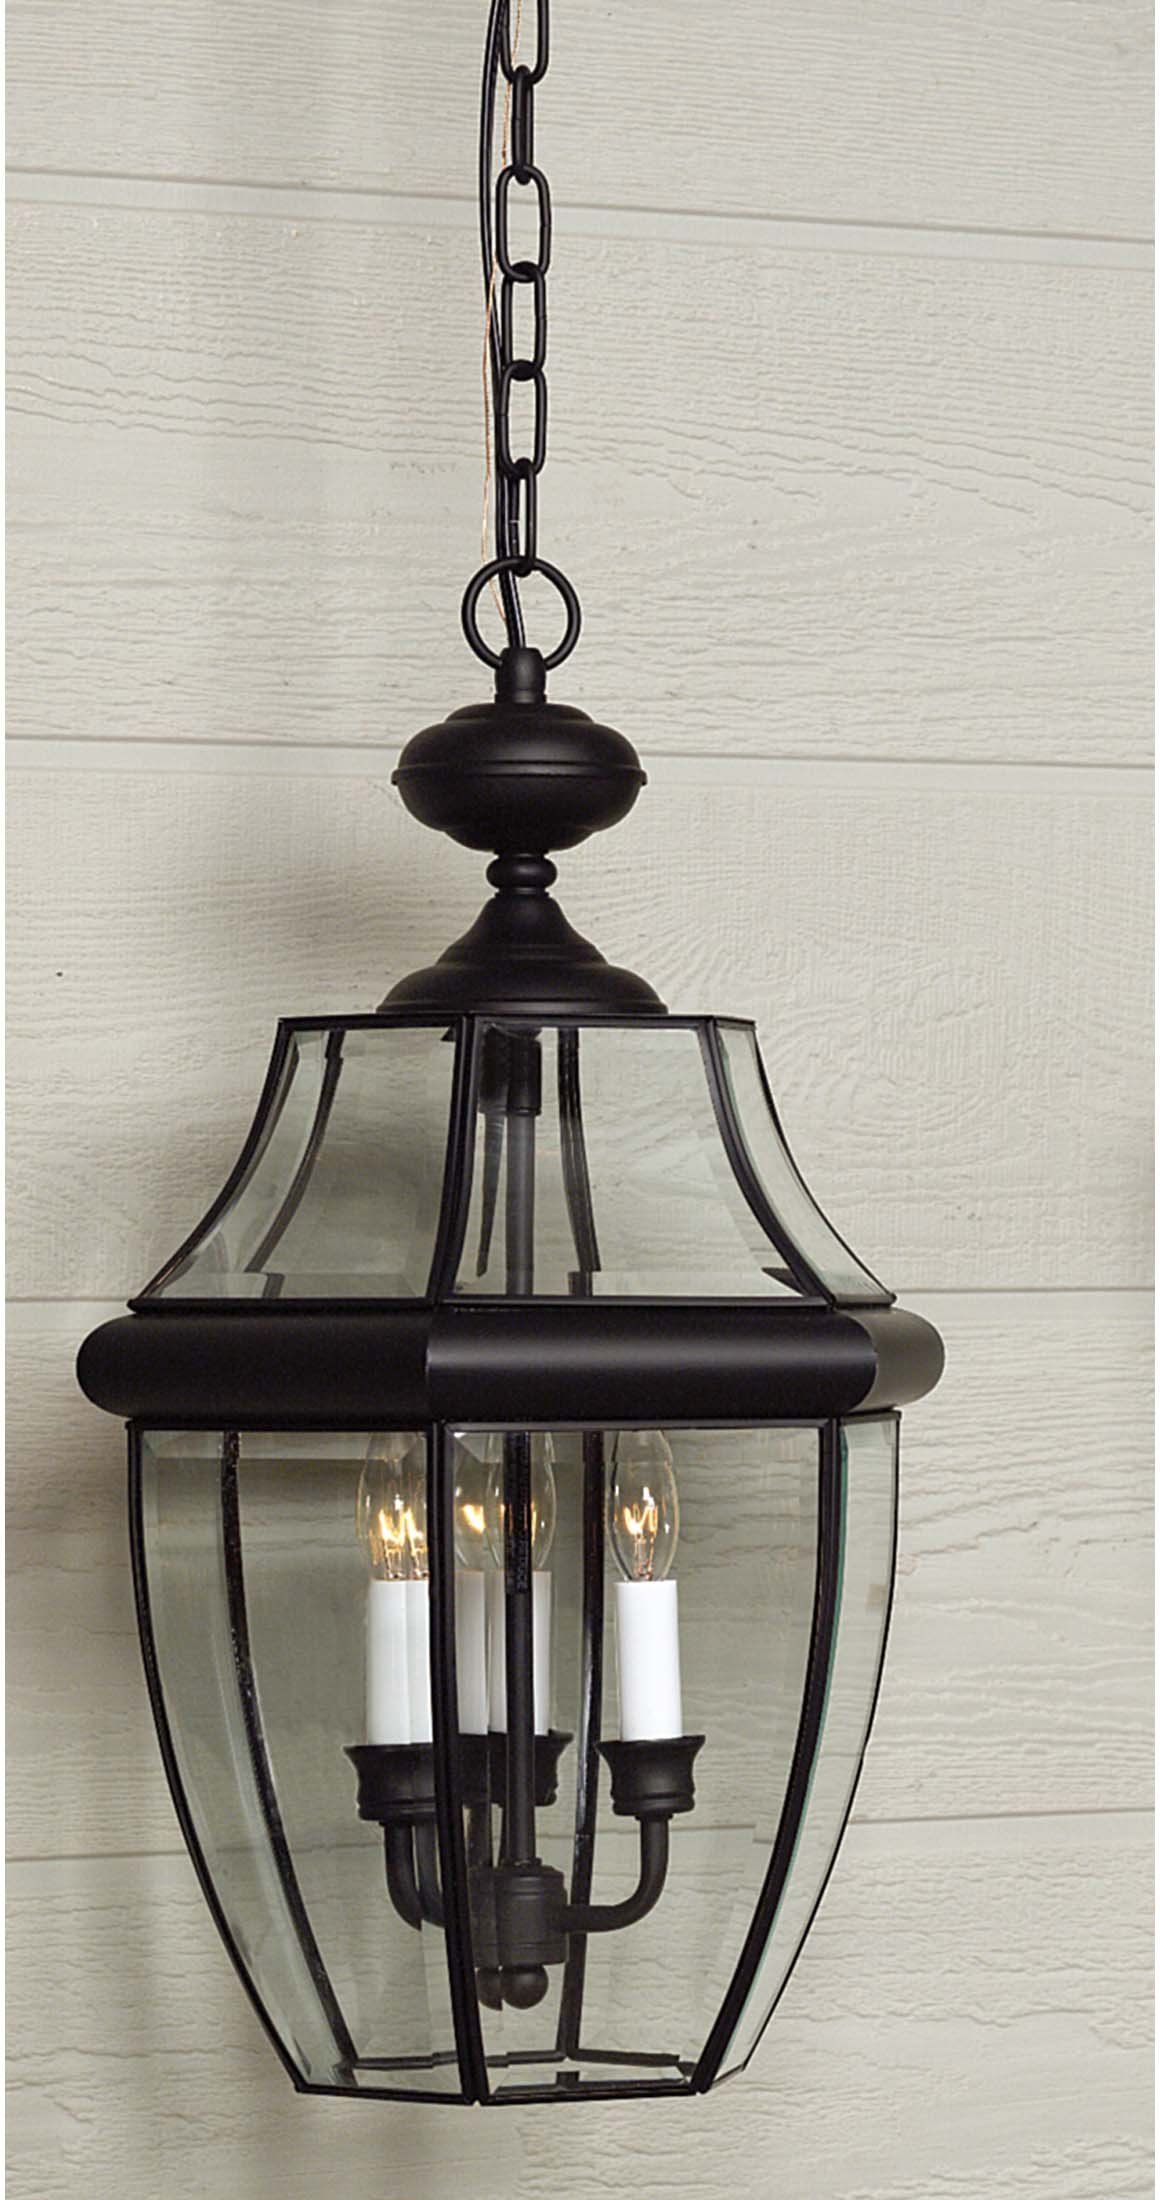 Quoizel NY1179K Newbury 3 Light Chain Hung Outdoor Wall Lantern with Mystic Black Finish